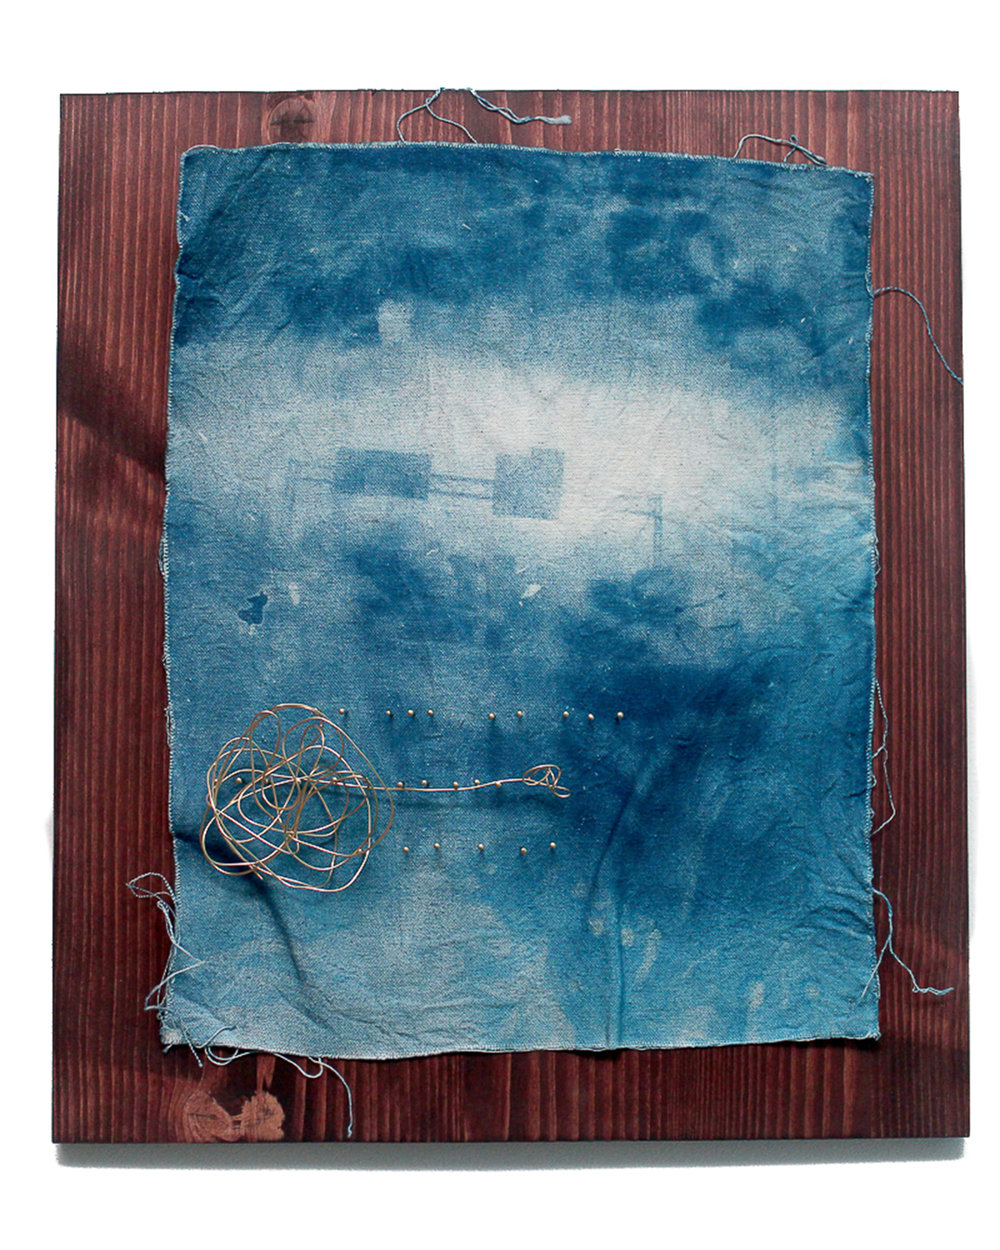 Jeremiah Morris - _Somewhere_Anywhere_ - 16x20 - Cyanotype photographic print on cavas, brass nails, brass wire, wood - 2016 - $650.jpg